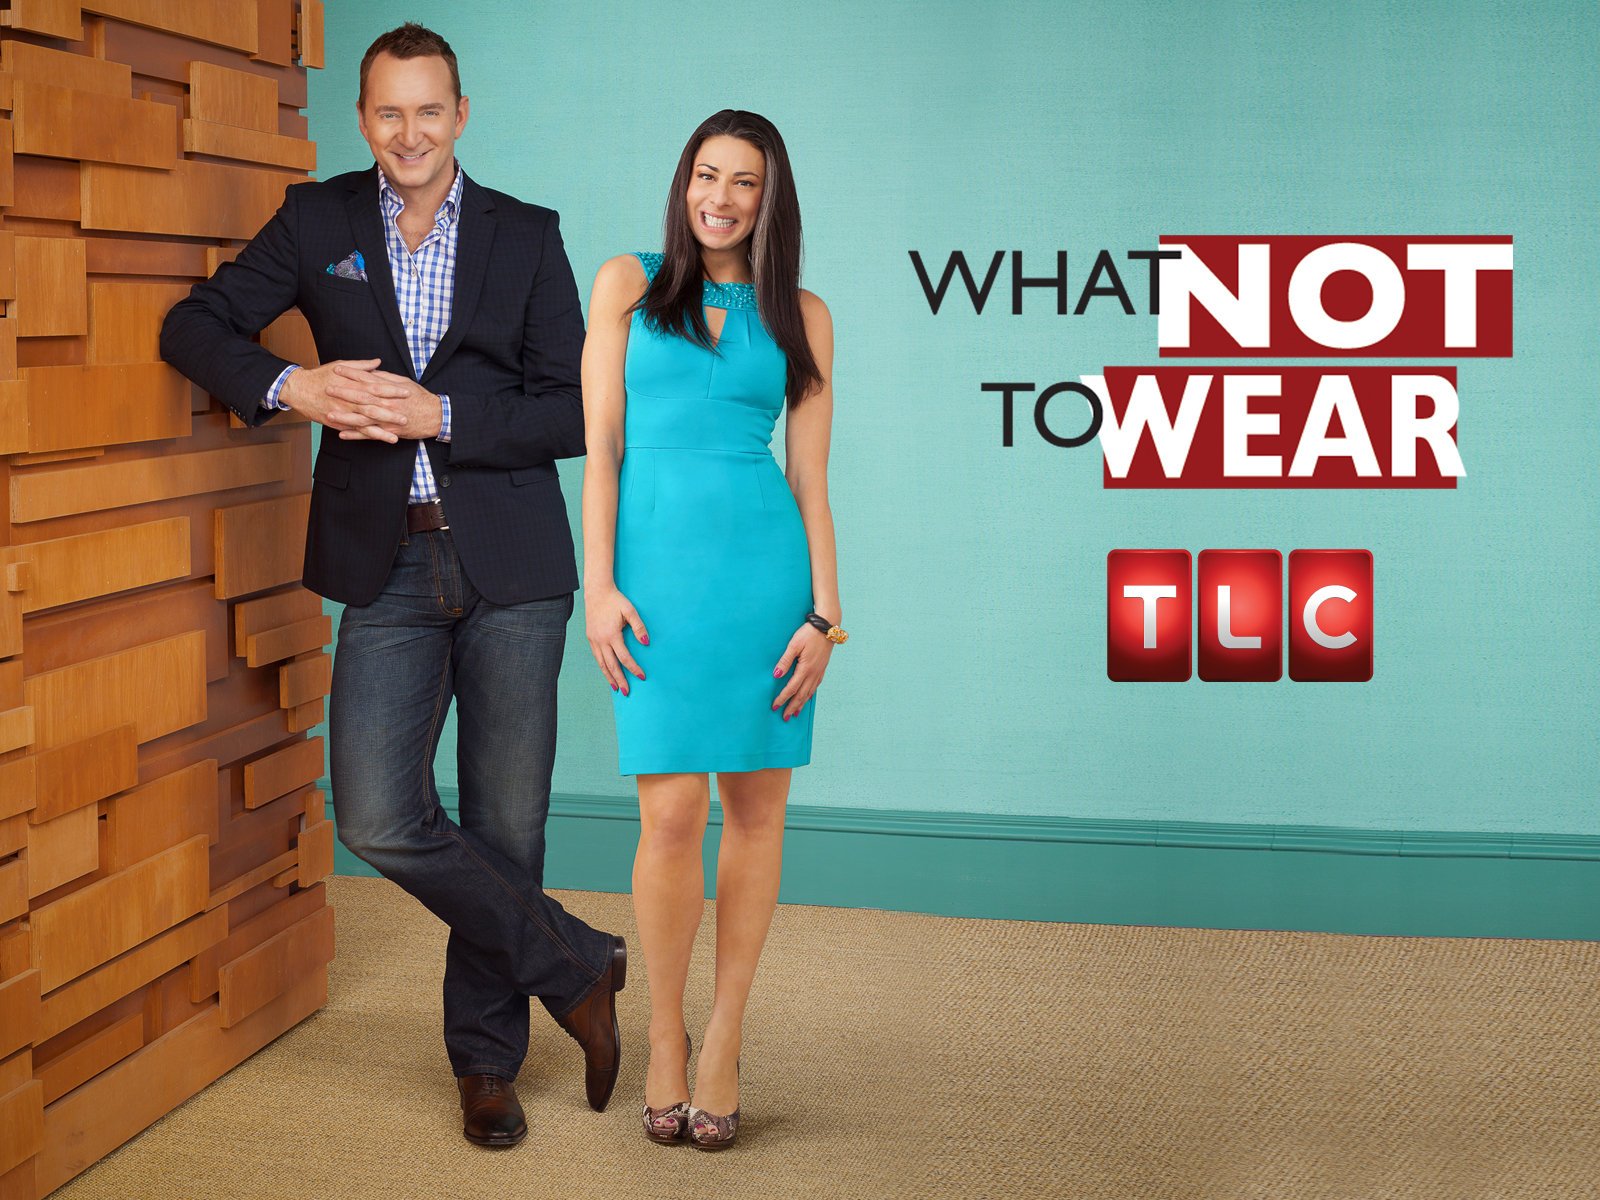 Tlc episodes full what not to wear